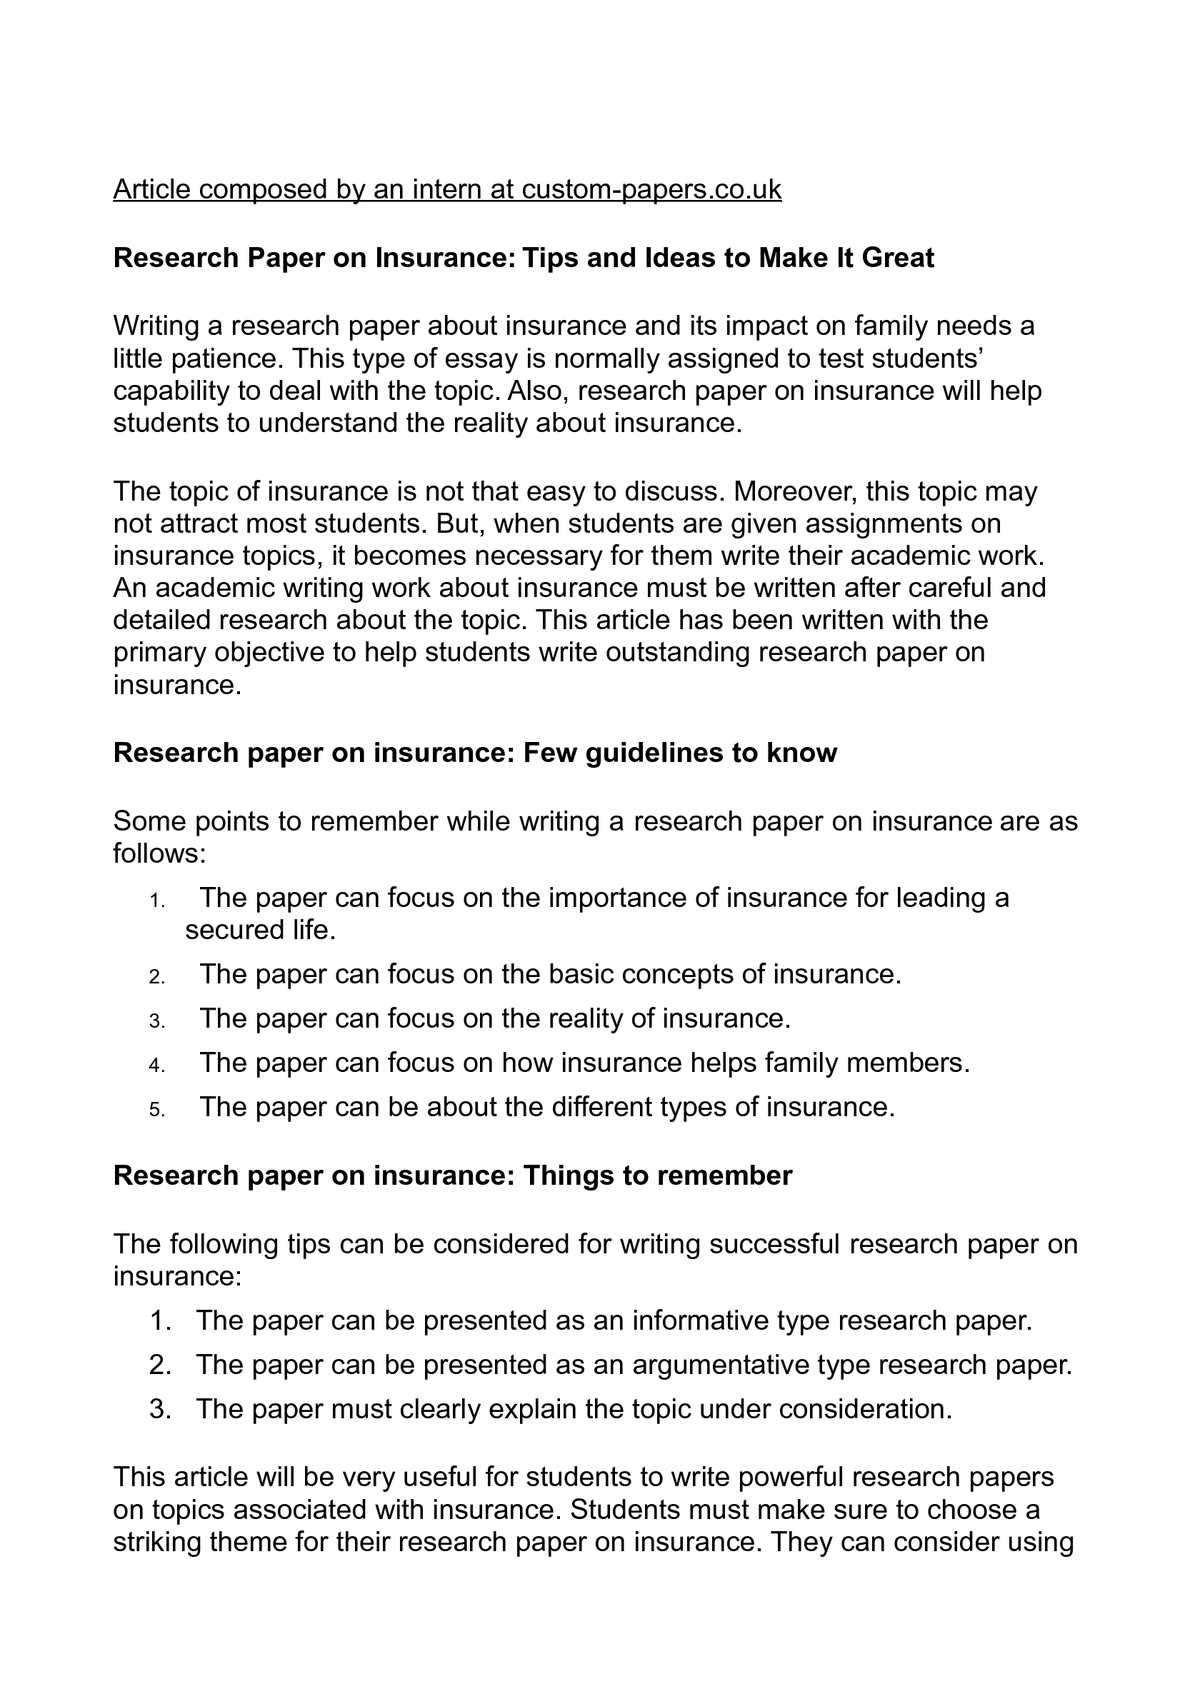 010 Ideas For Research Paper Shocking A Topics Writing Good Social Psychology Full